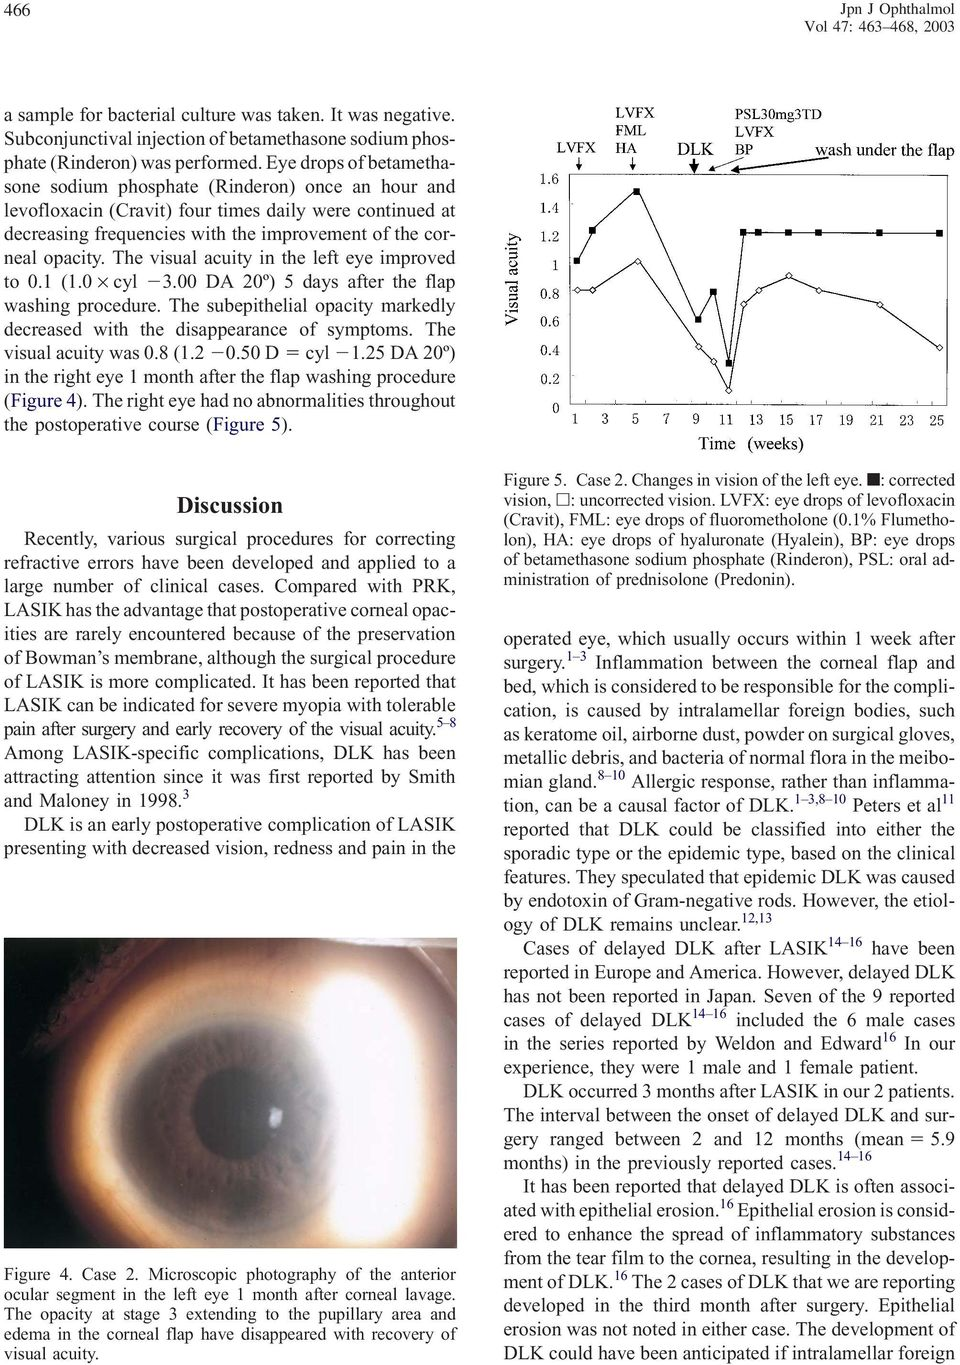 The visual acuity in the left eye improved to 0.1 (1.0 cyl 3.00 DA 20º) 5 days after the flap washing procedure. The subepithelial opacity markedly decreased with the disappearance of symptoms.